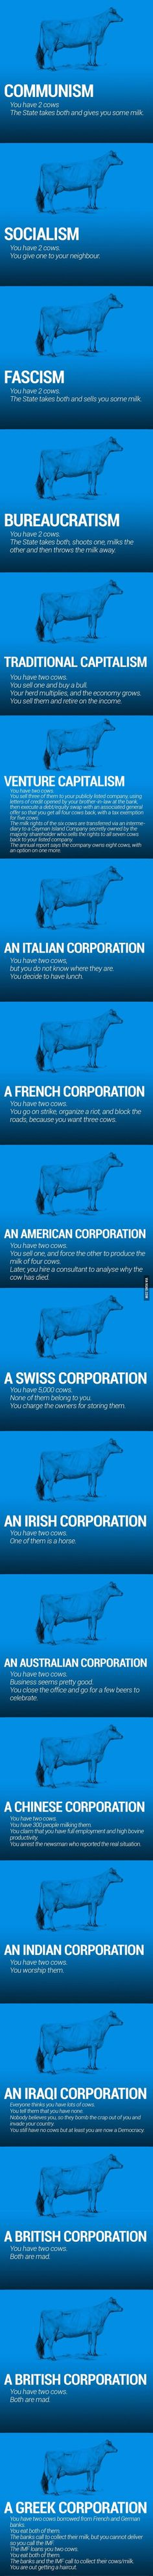 The world economy explained with just two cows http://ibeebz.com